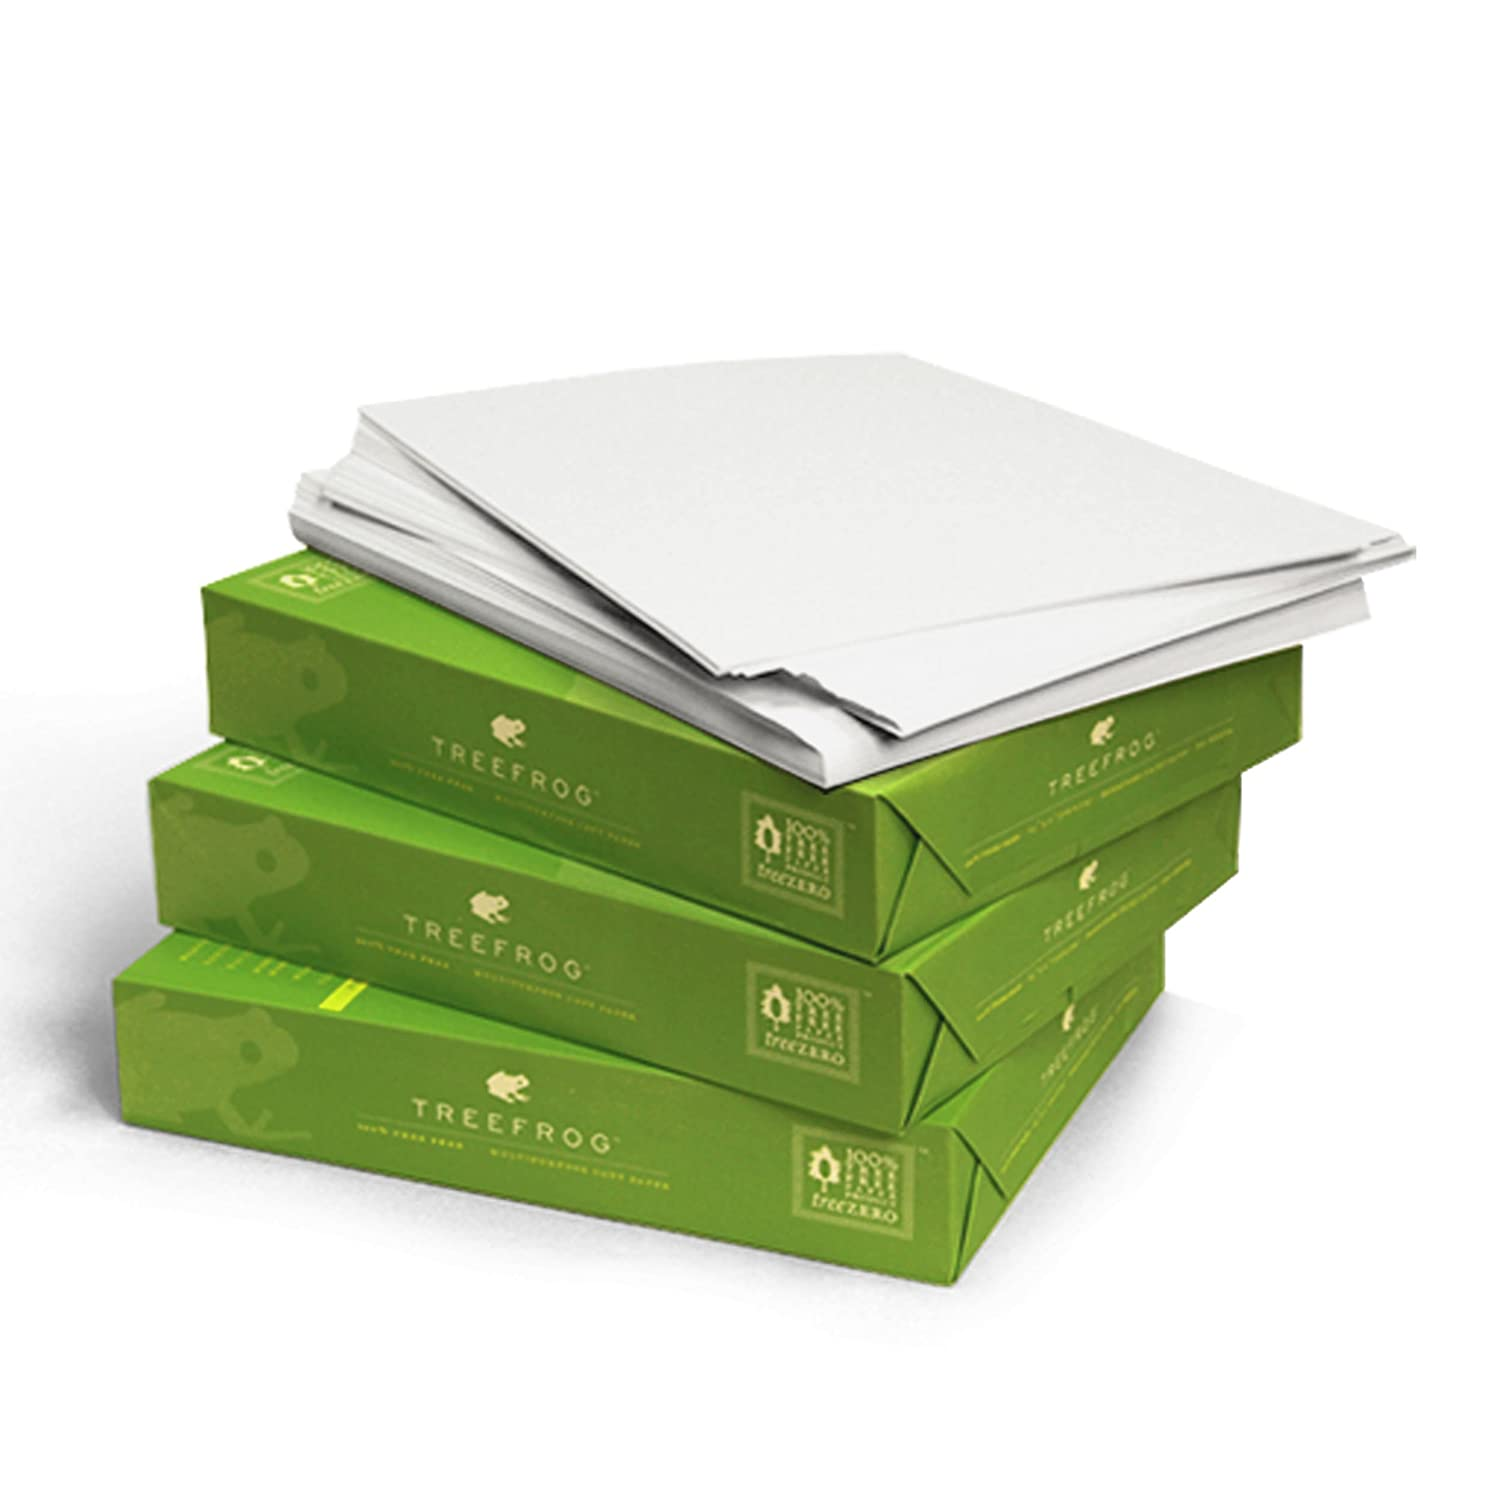 It s easy to find the office supplies copy paper furniture ink - Amazon Com Treefrog 100 Tree Free Eco Friendly Copy Paper 5 Ream Case 793573849148 Office Products